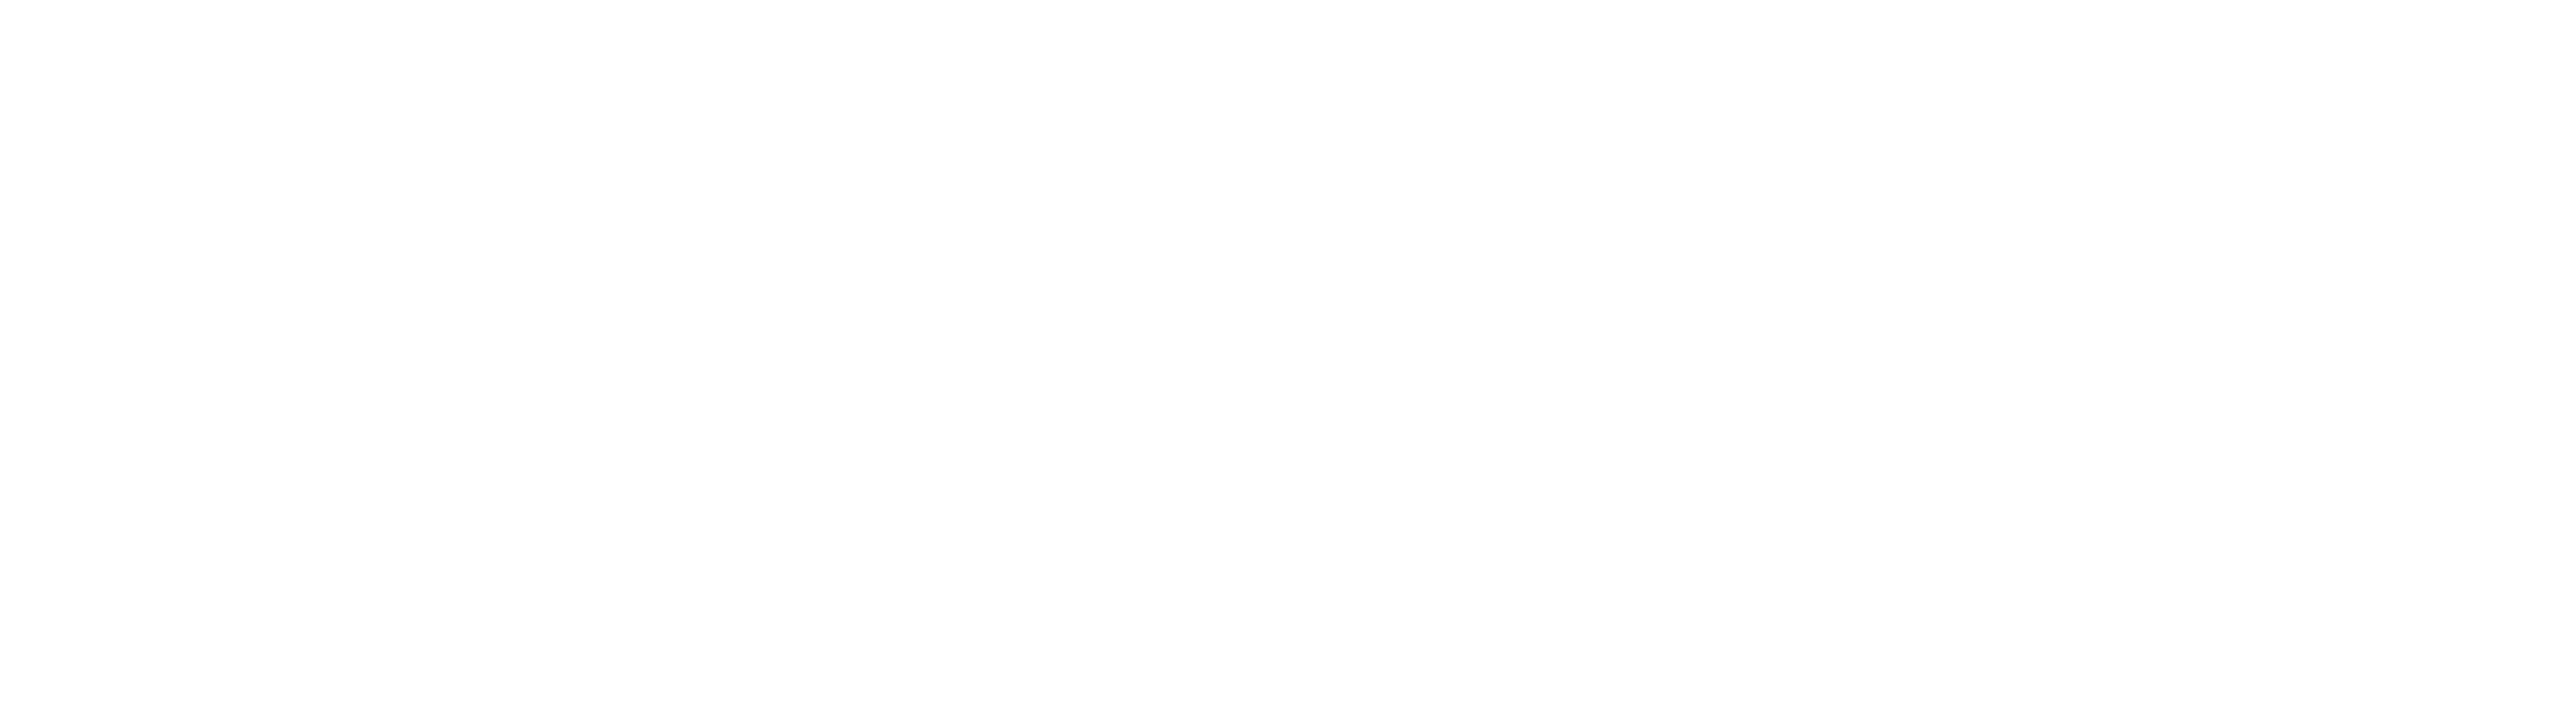 Loveland Flowers & Gifts - Flower Delivery in Bell Gardens, CA